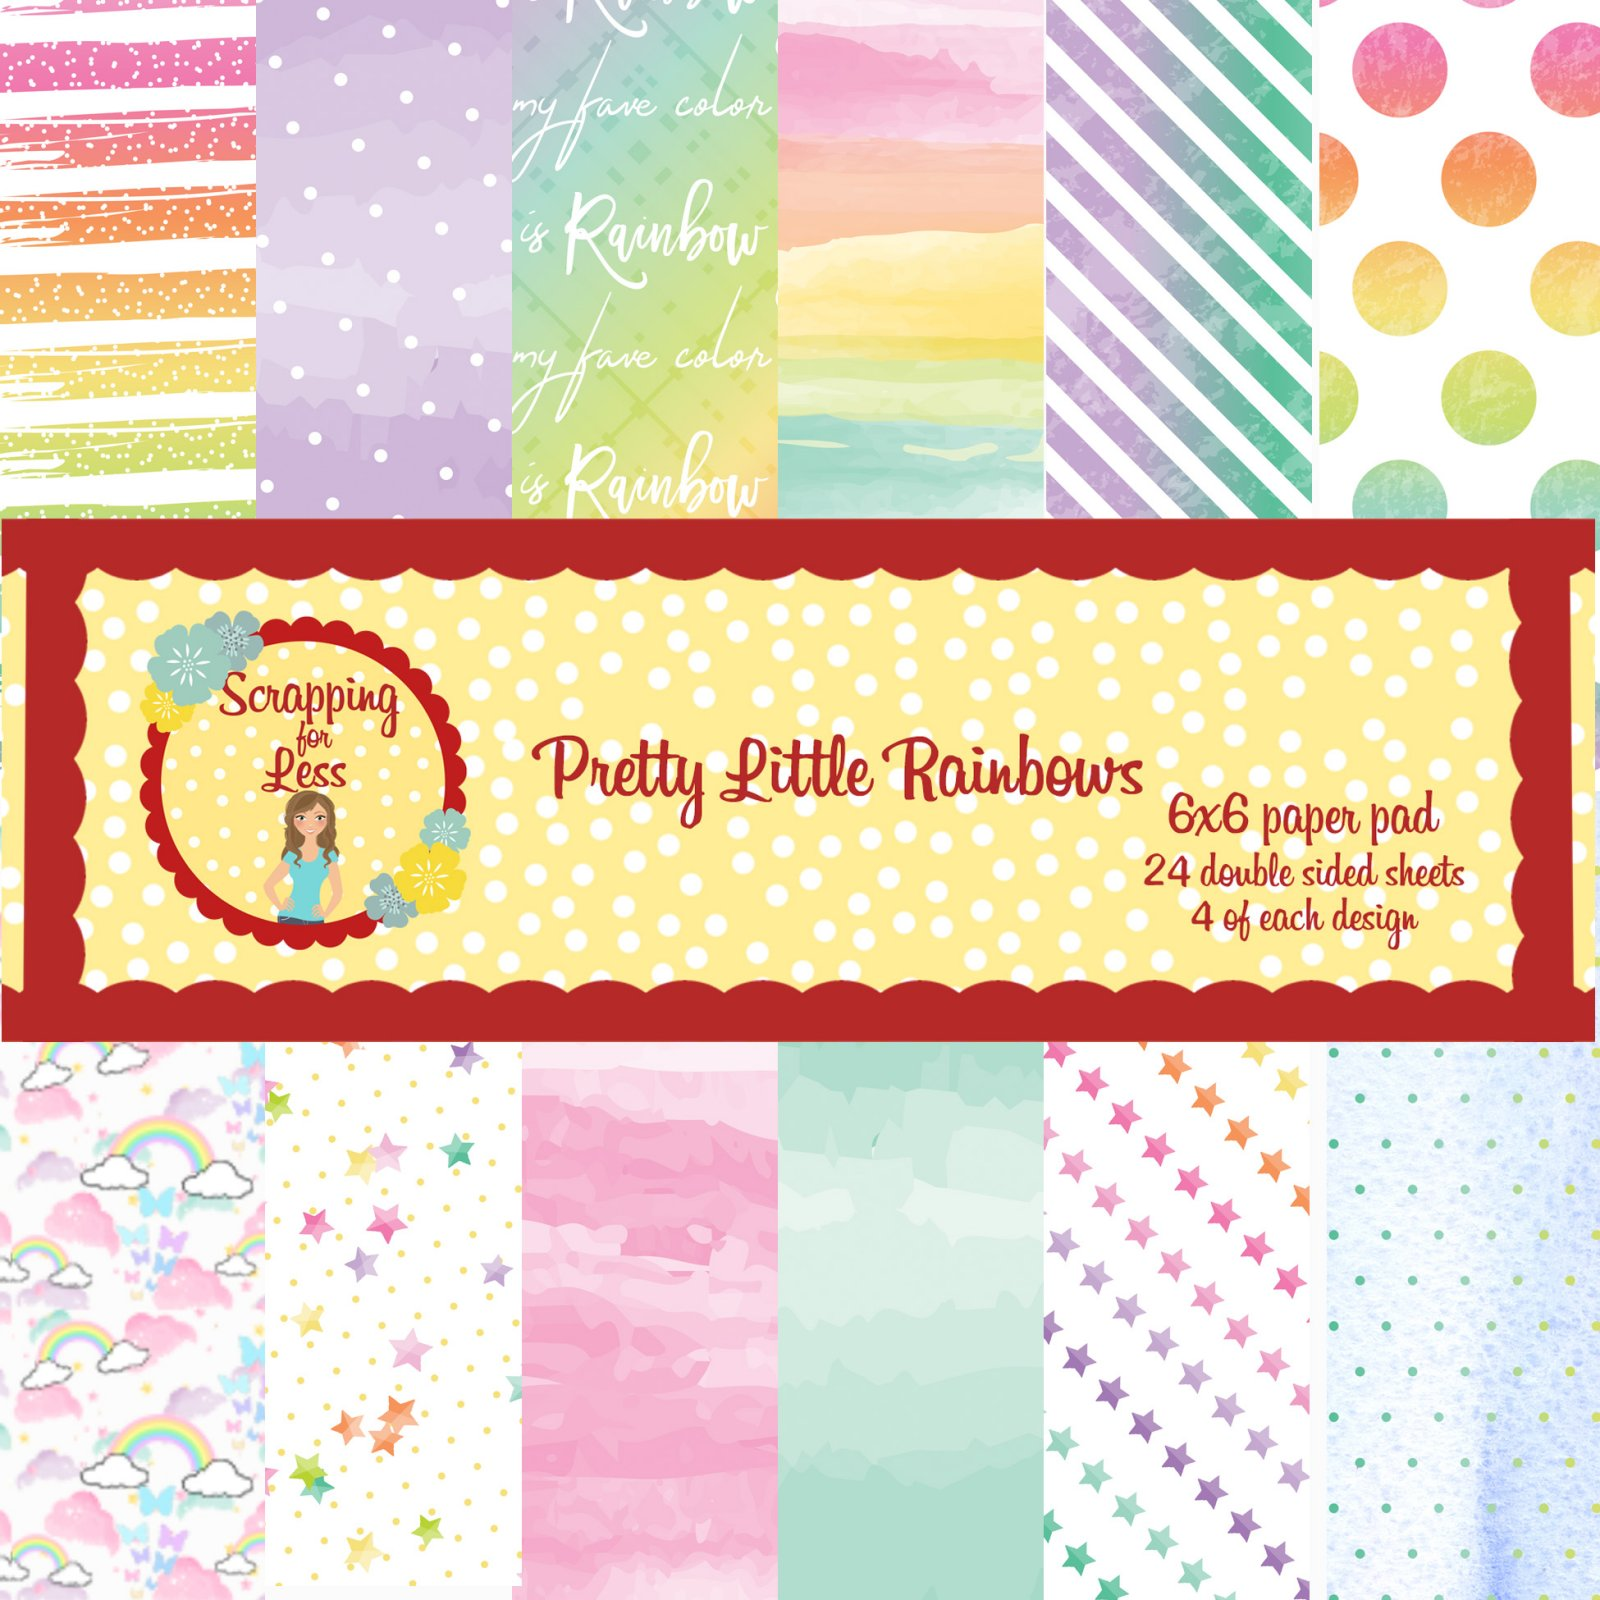 Scrapping for Less Pretty Little Rainbows 6x6 Paper Pad